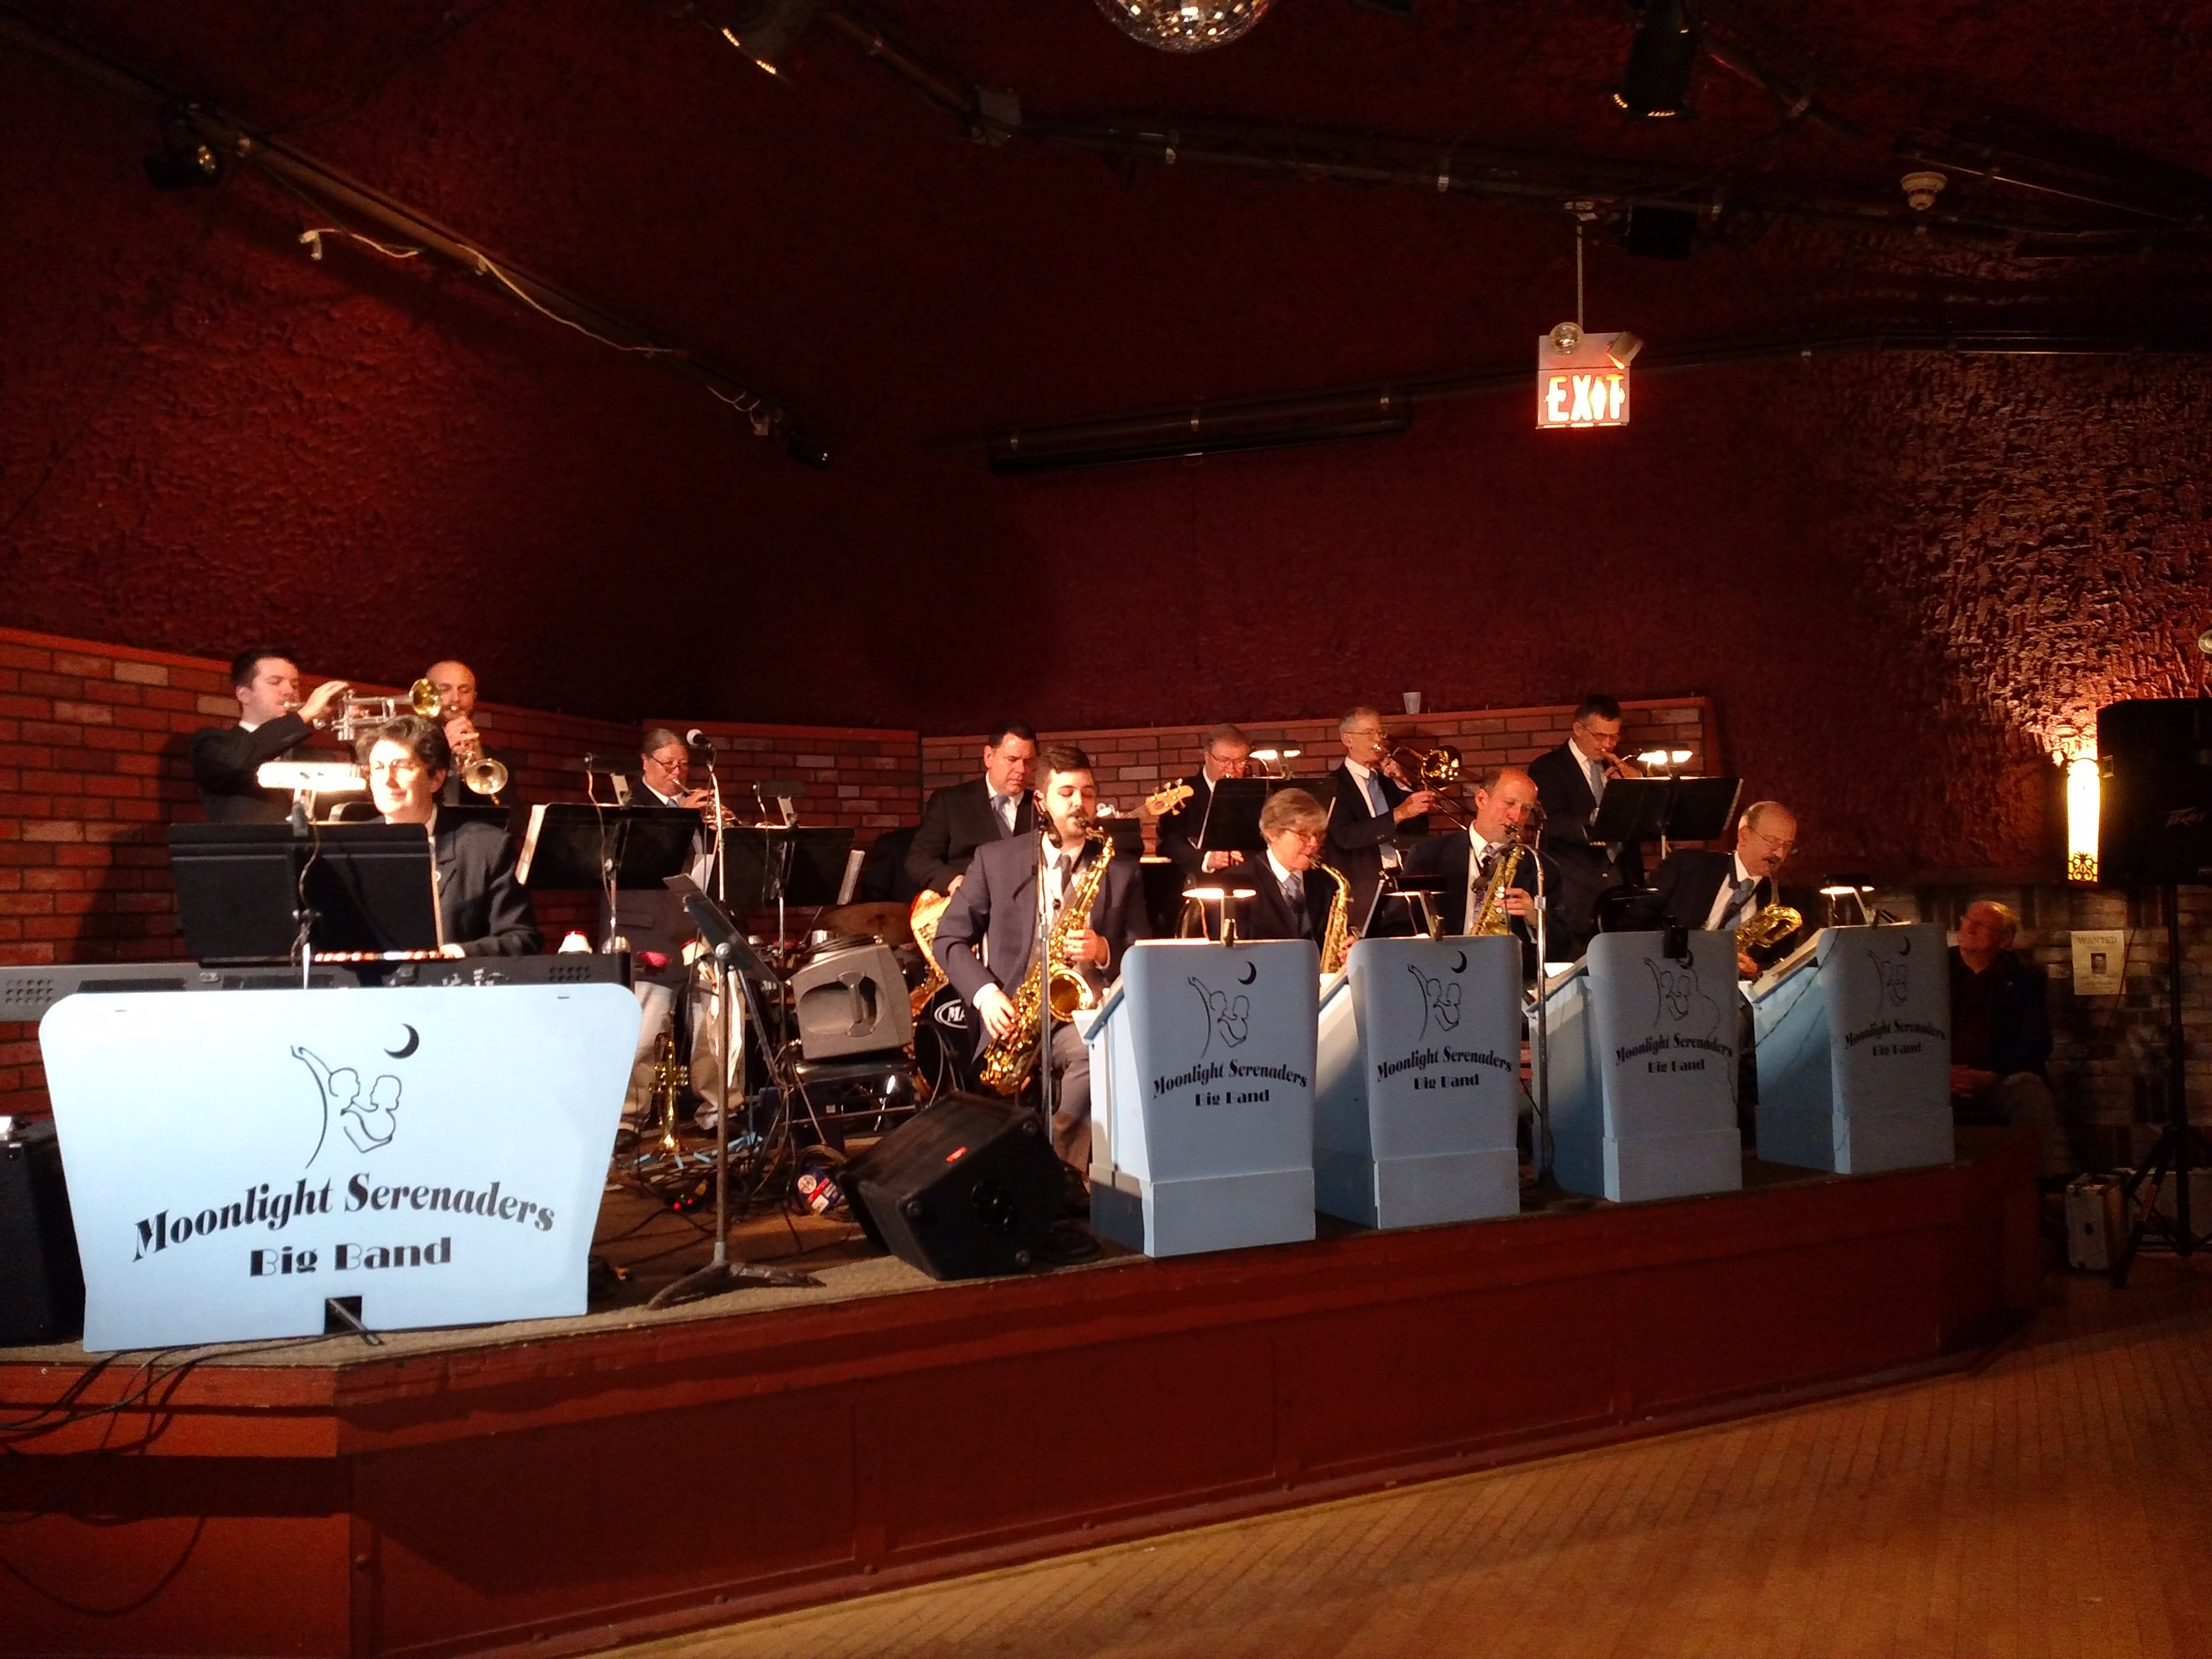 The Moonlight Sereneders Big Band at the Wabasha Caves, St Paul's Coolest Venue